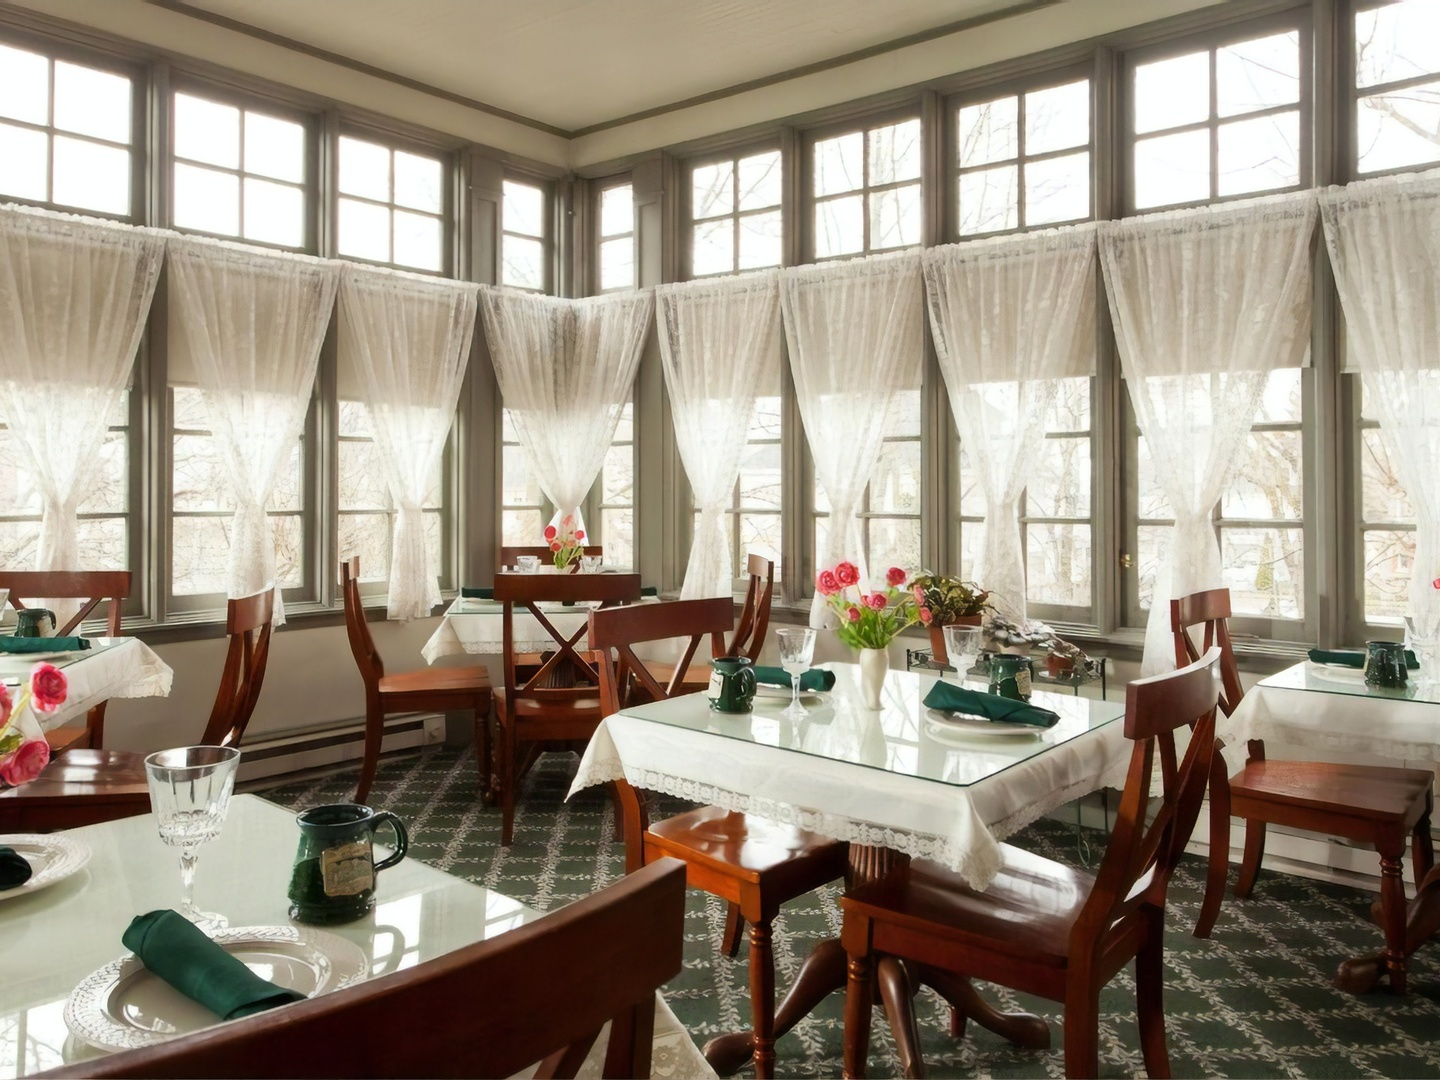 A dining room table in front of a window at Lafayette Inn.